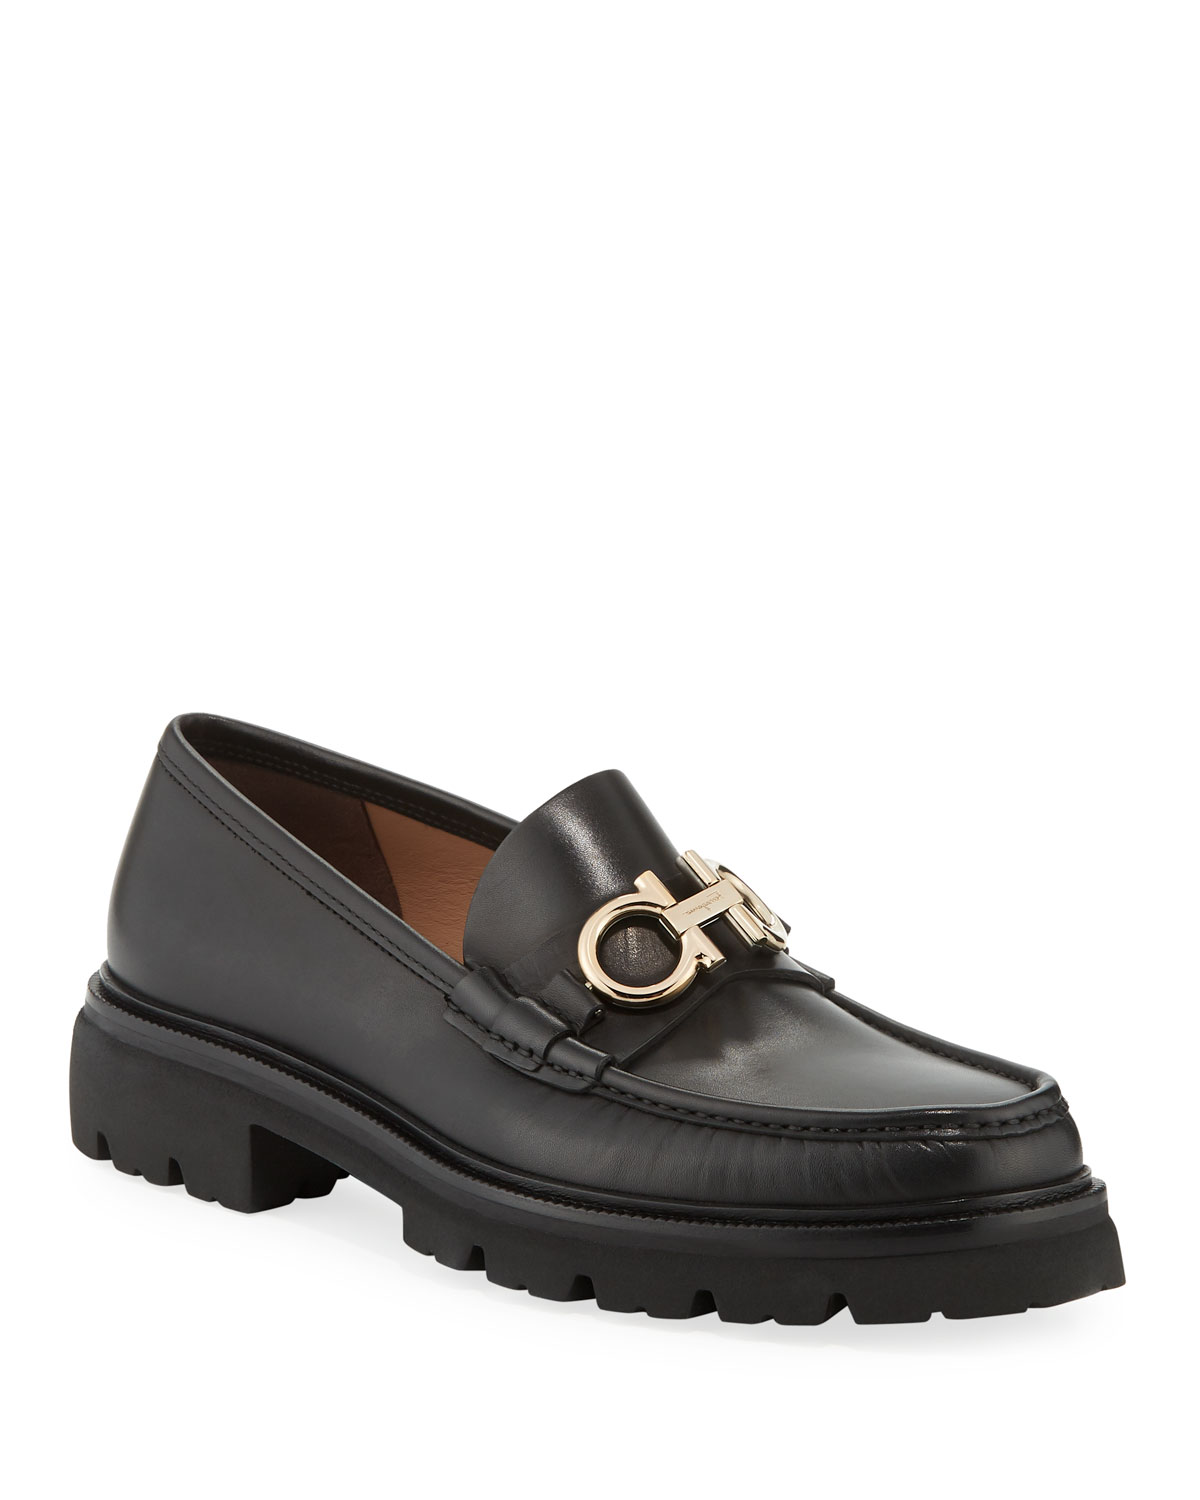 698a1292e8f Salvatore FerragamoMen s Bleecker Leather Lug-Sole Loafers with Reversible  Bit